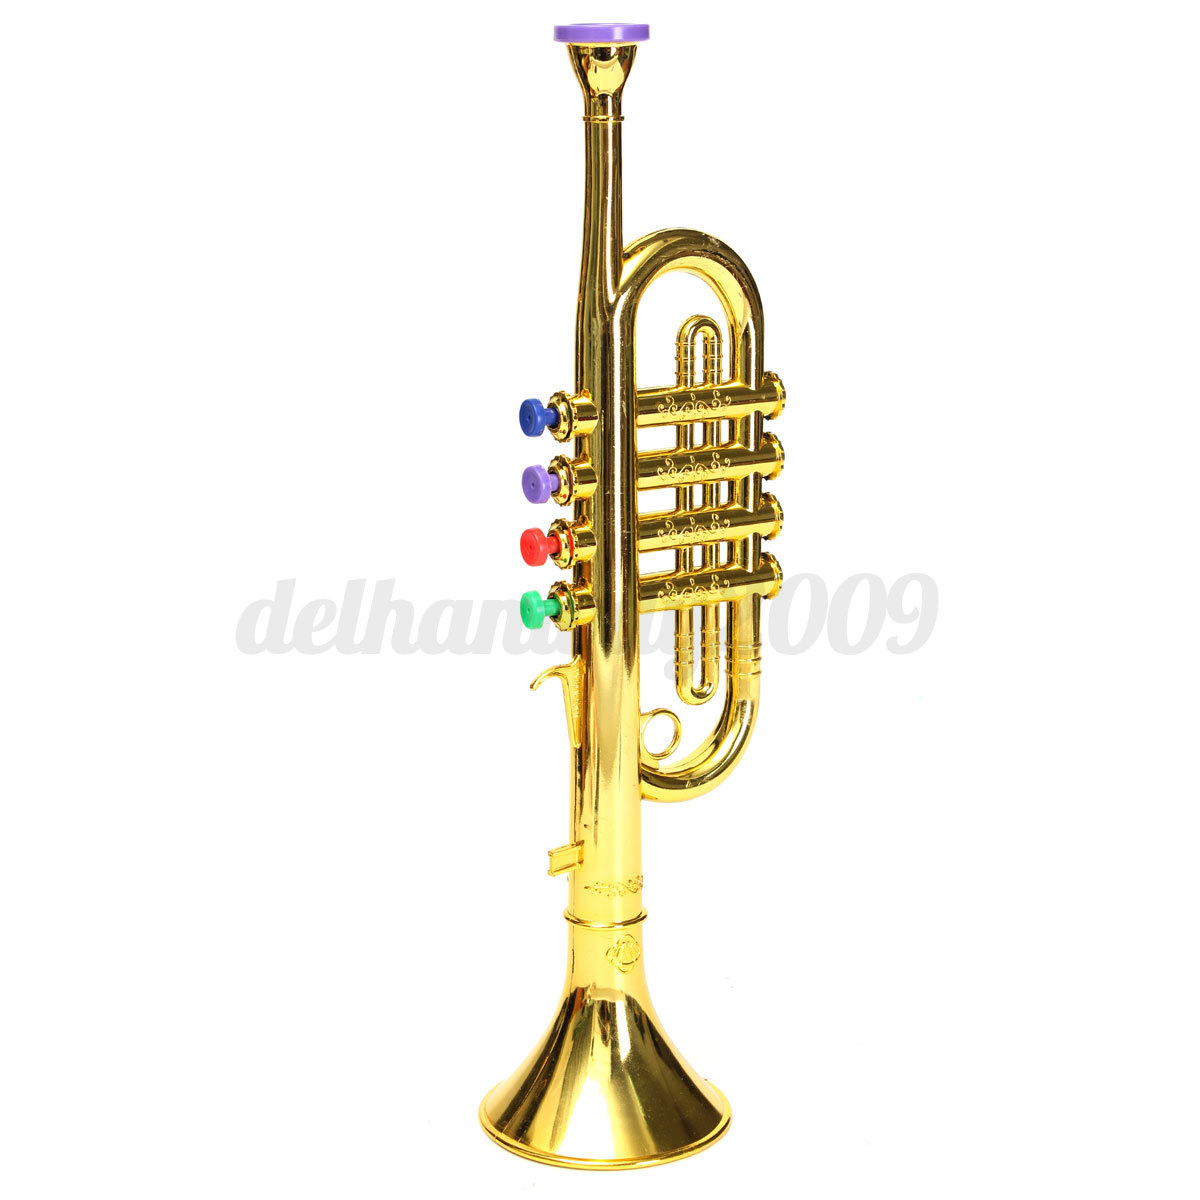 Toy Musical Horns : Golden trumpet horn musical instrument gift simulation toy